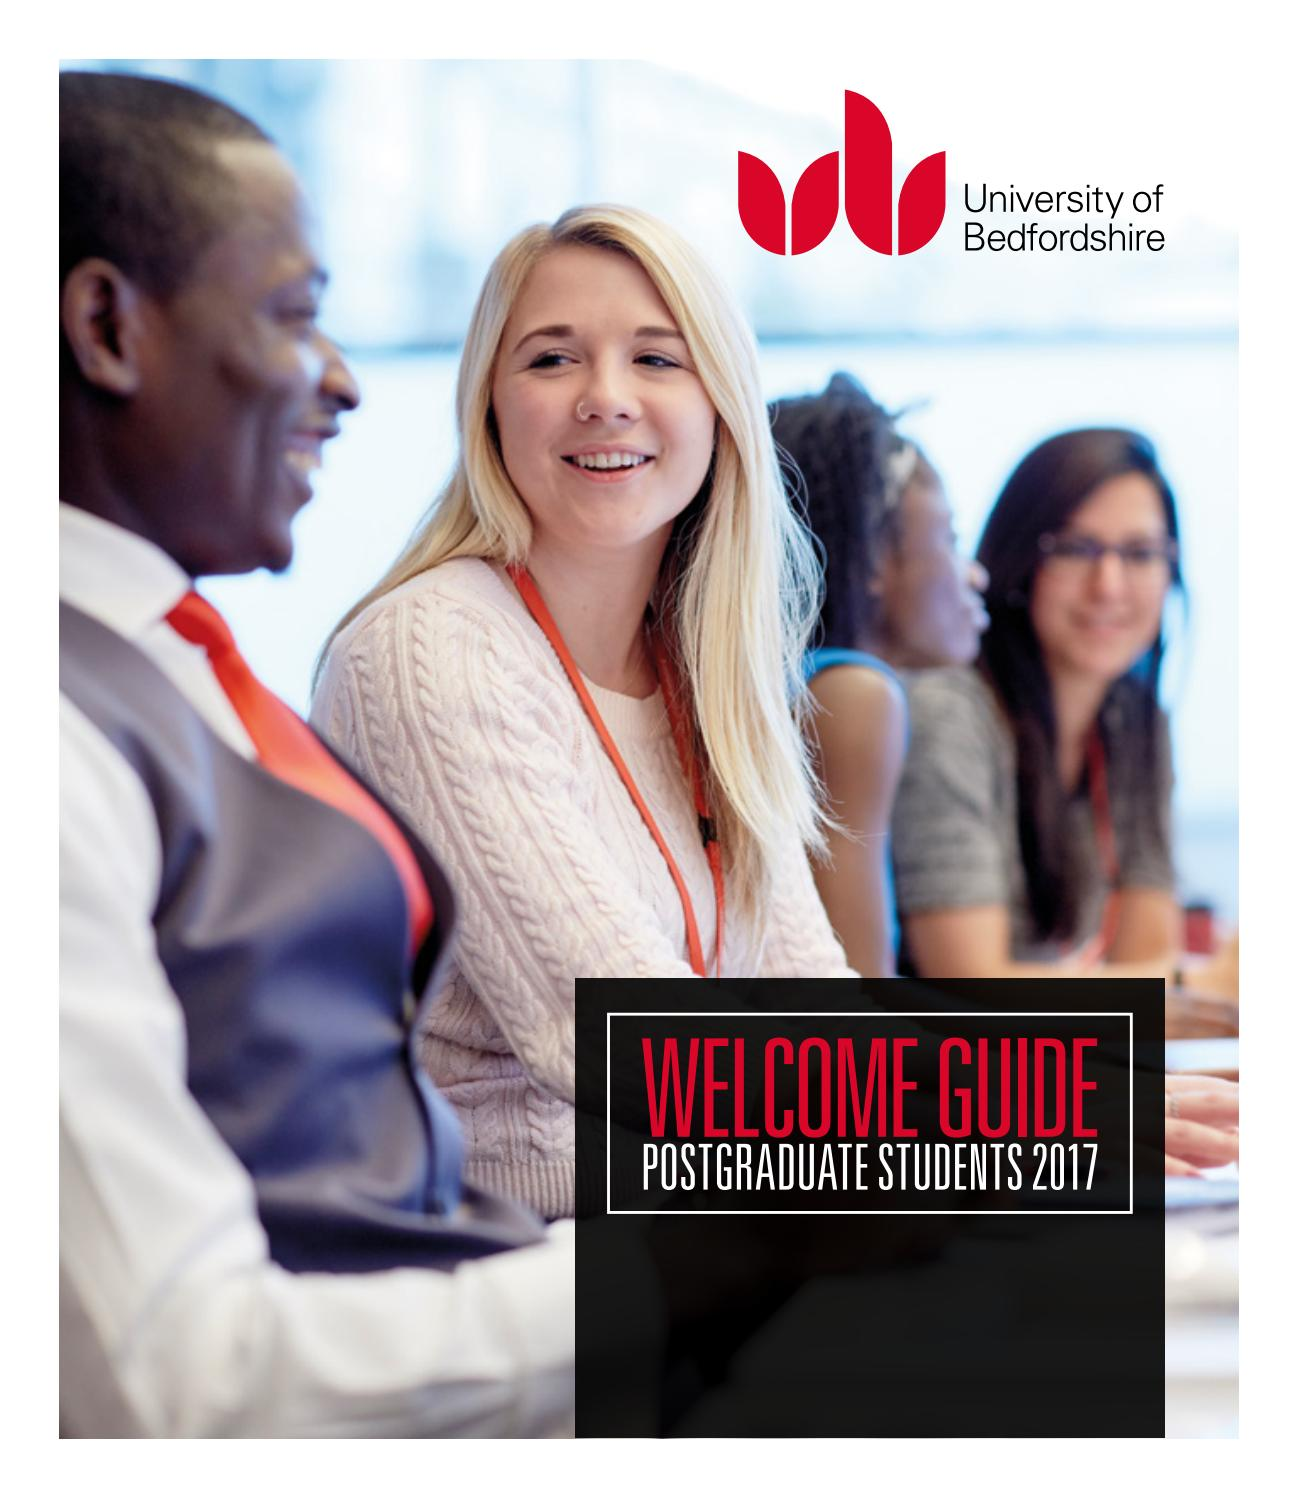 Postgraduate Student Welcome Guide 2017 By University Of